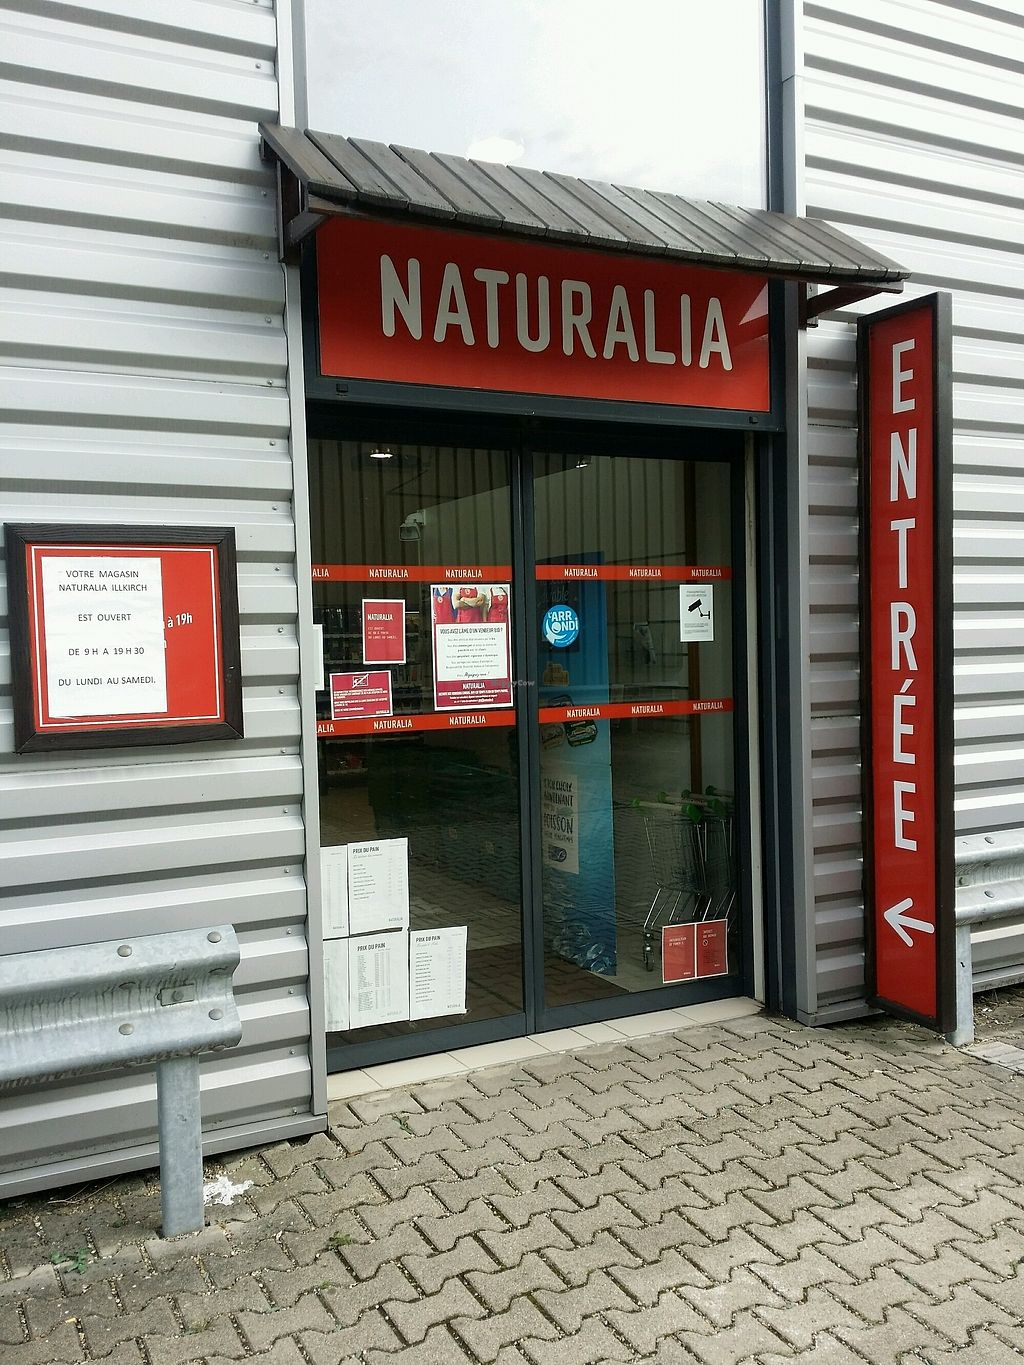 """Photo of Naturalia  by <a href=""""/members/profile/AdrienZ"""">AdrienZ</a> <br/>entrée  <br/> January 2, 2018  - <a href='/contact/abuse/image/54603/342109'>Report</a>"""